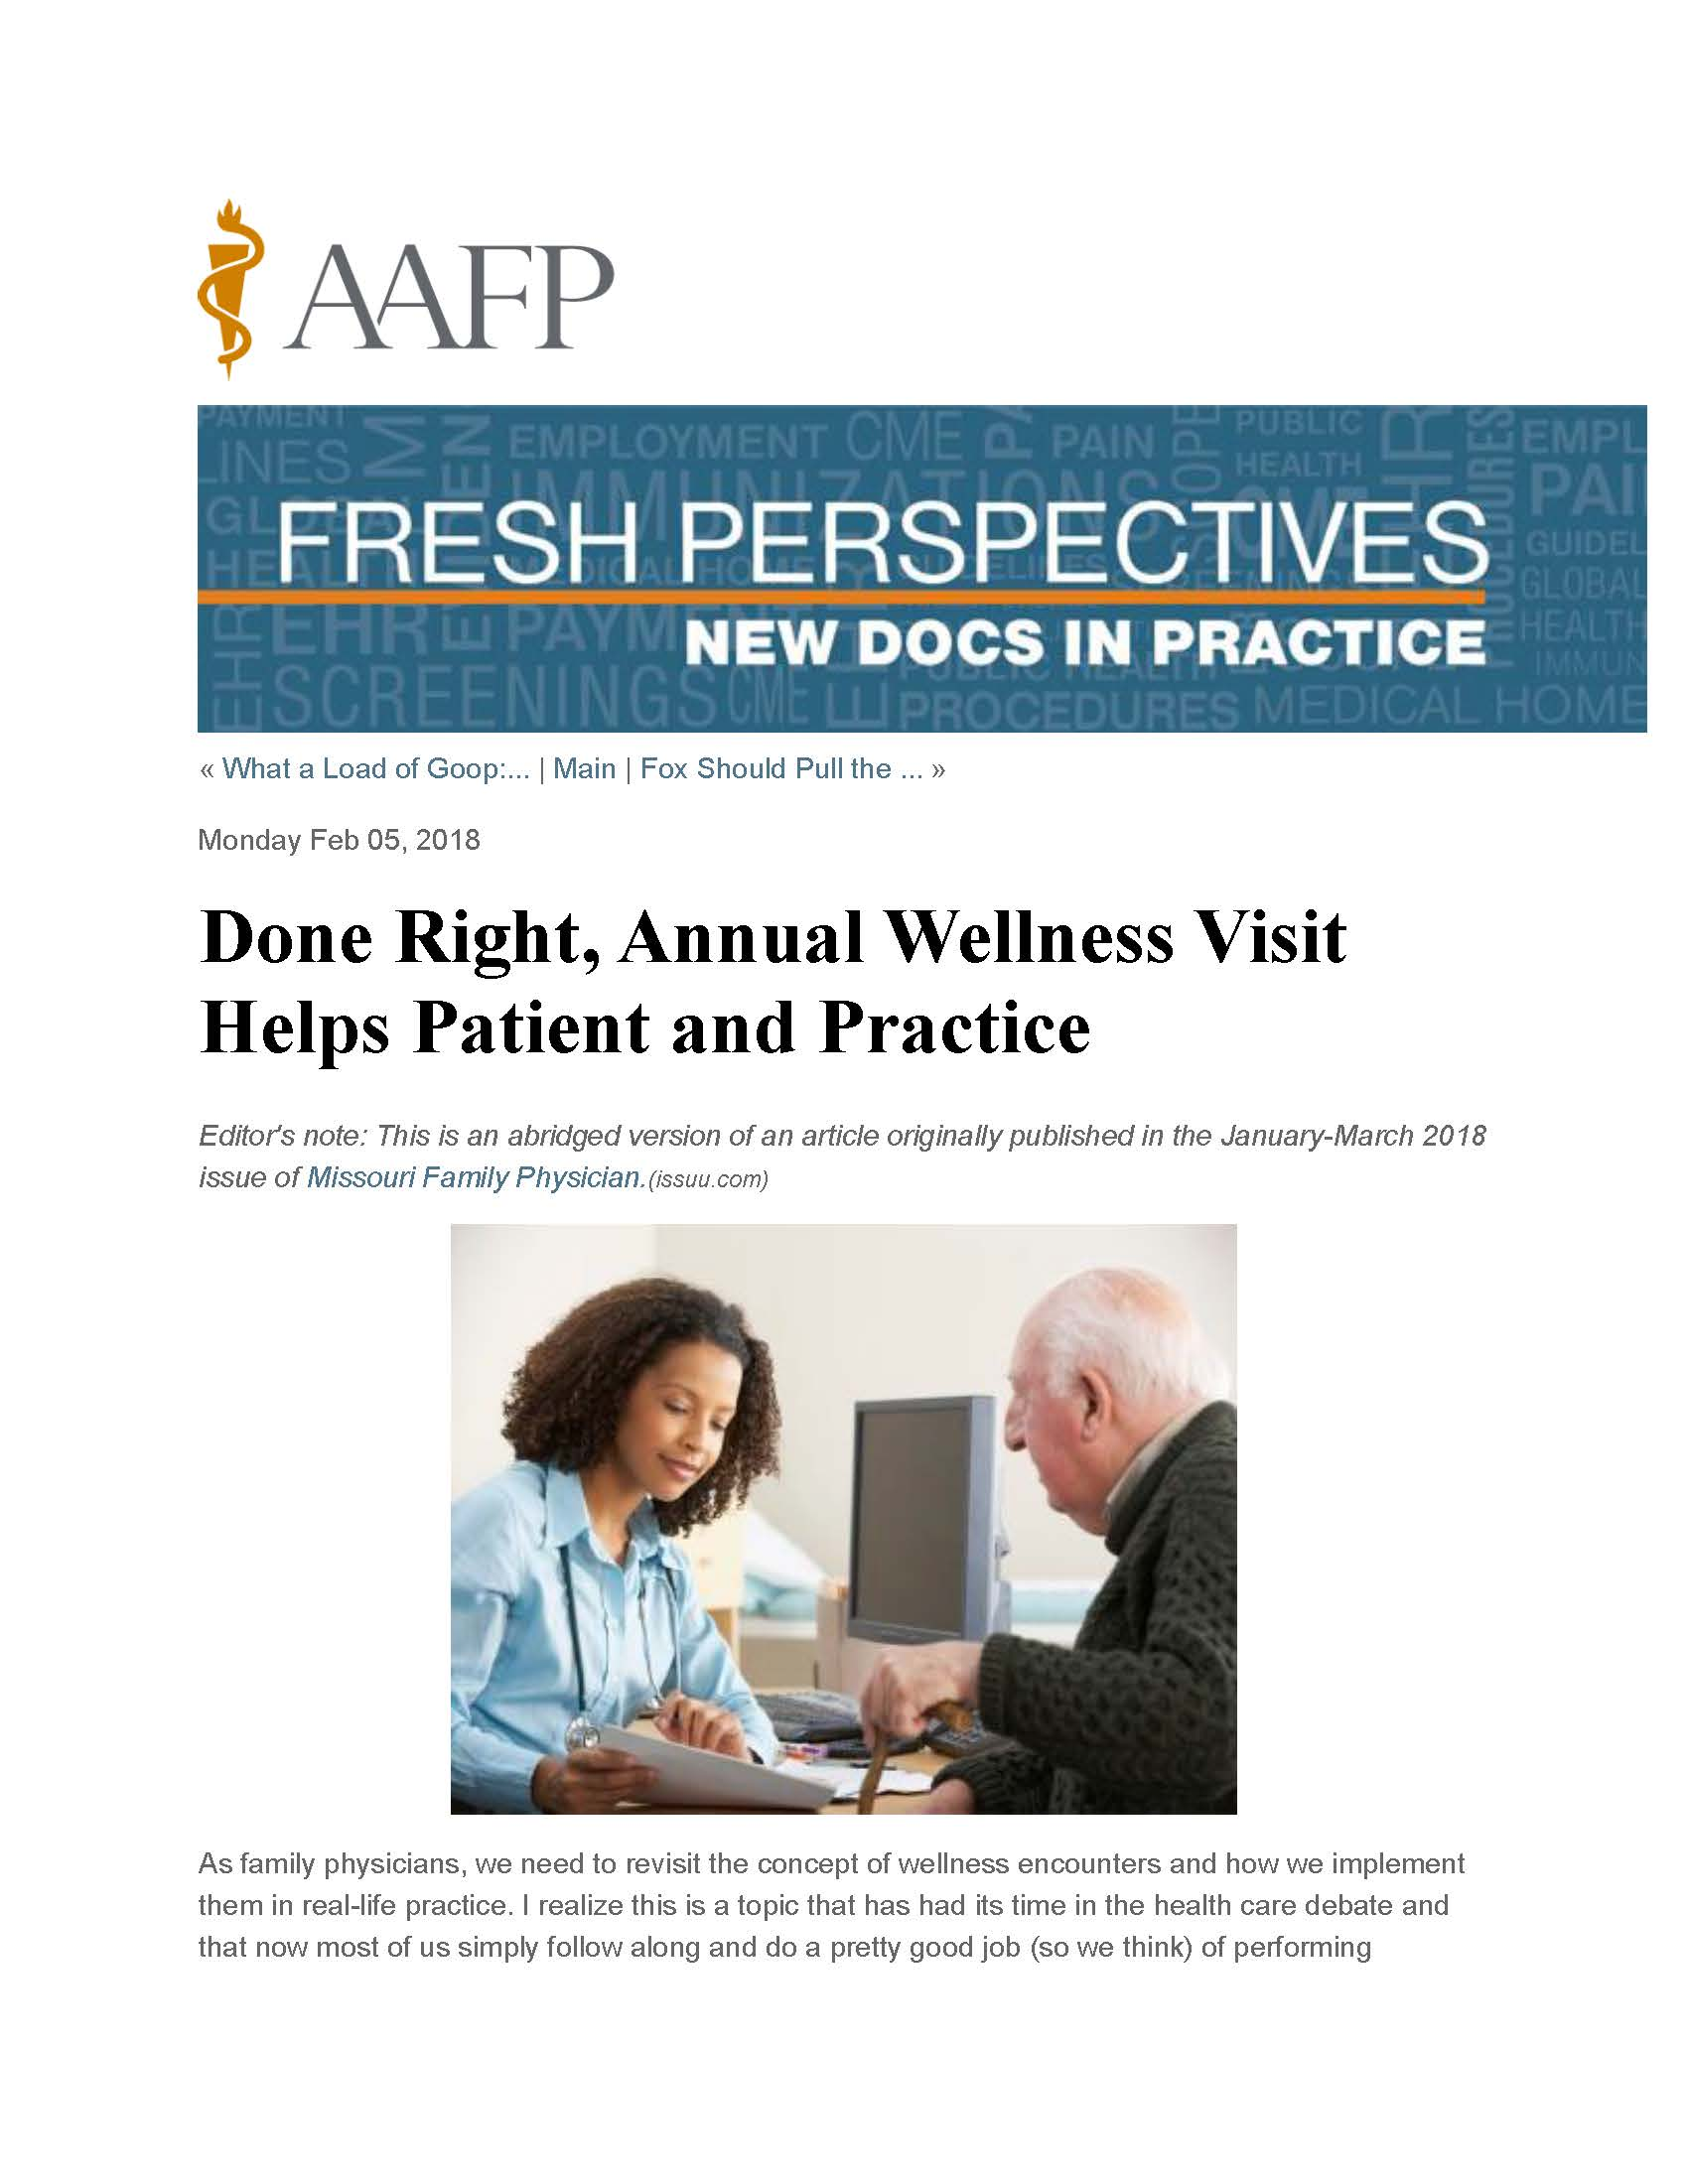 AAFP Fresh Perspectives